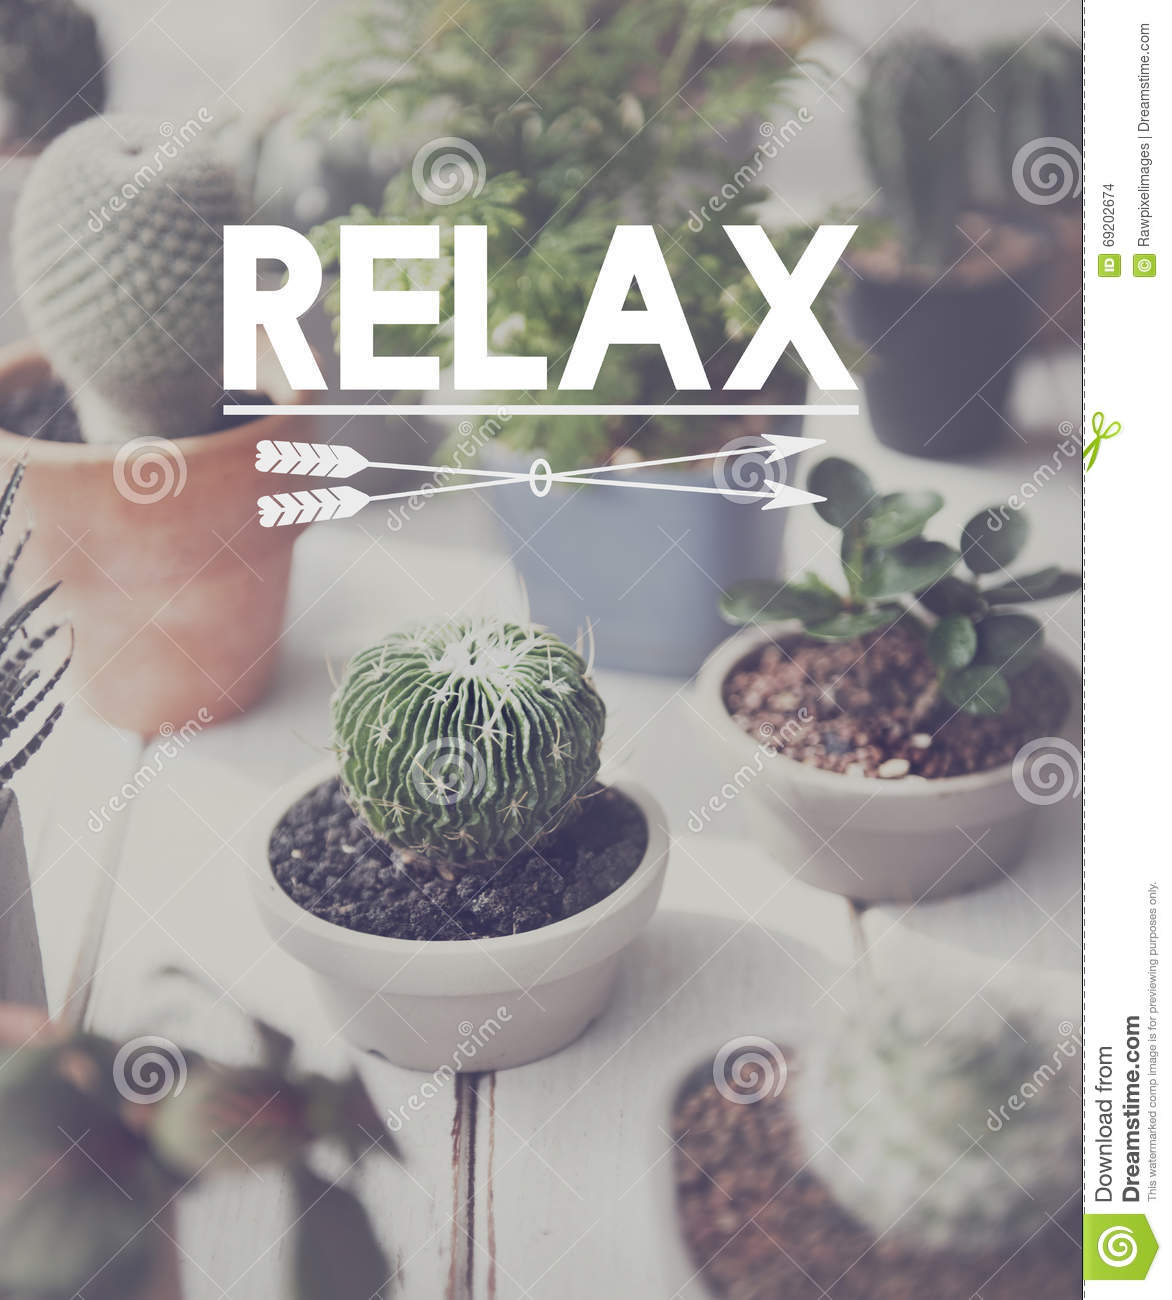 Download Relaxation Relax Chill Out Peace Resting Serenity Concept Stock Photo - Image of hobby, botany: 69202674